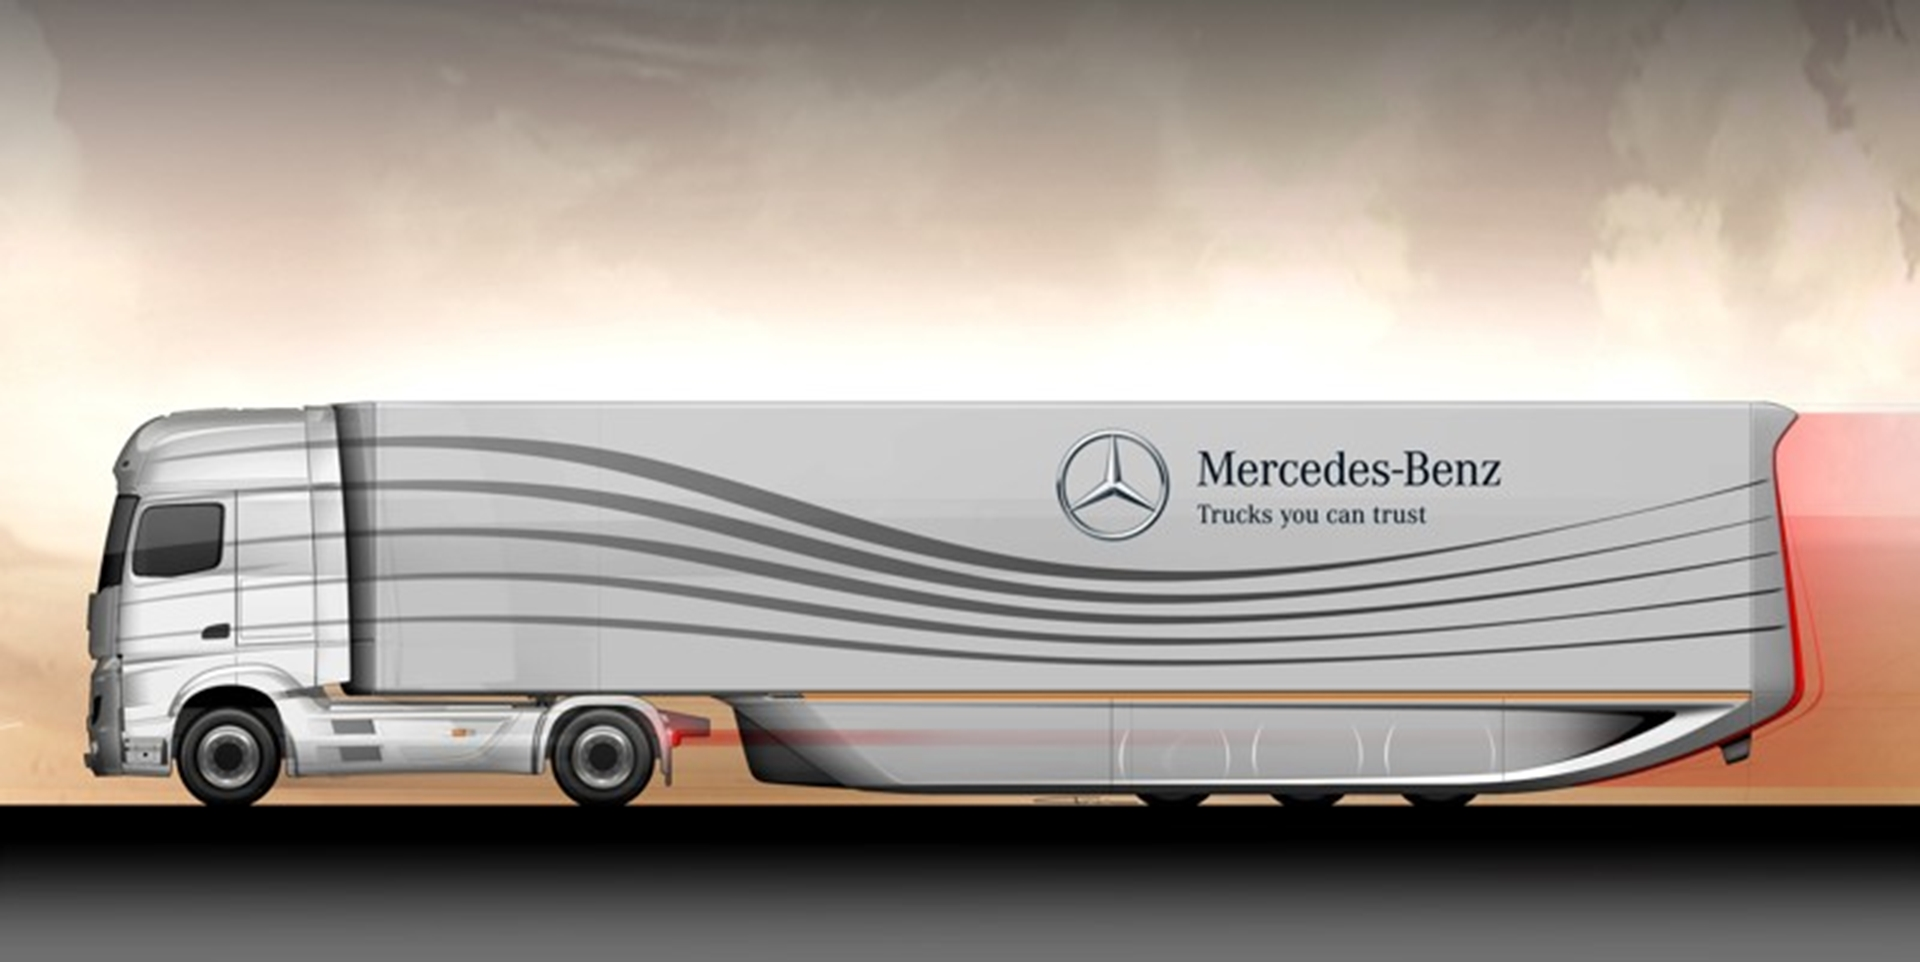 Mercedes Benz Aero trailer